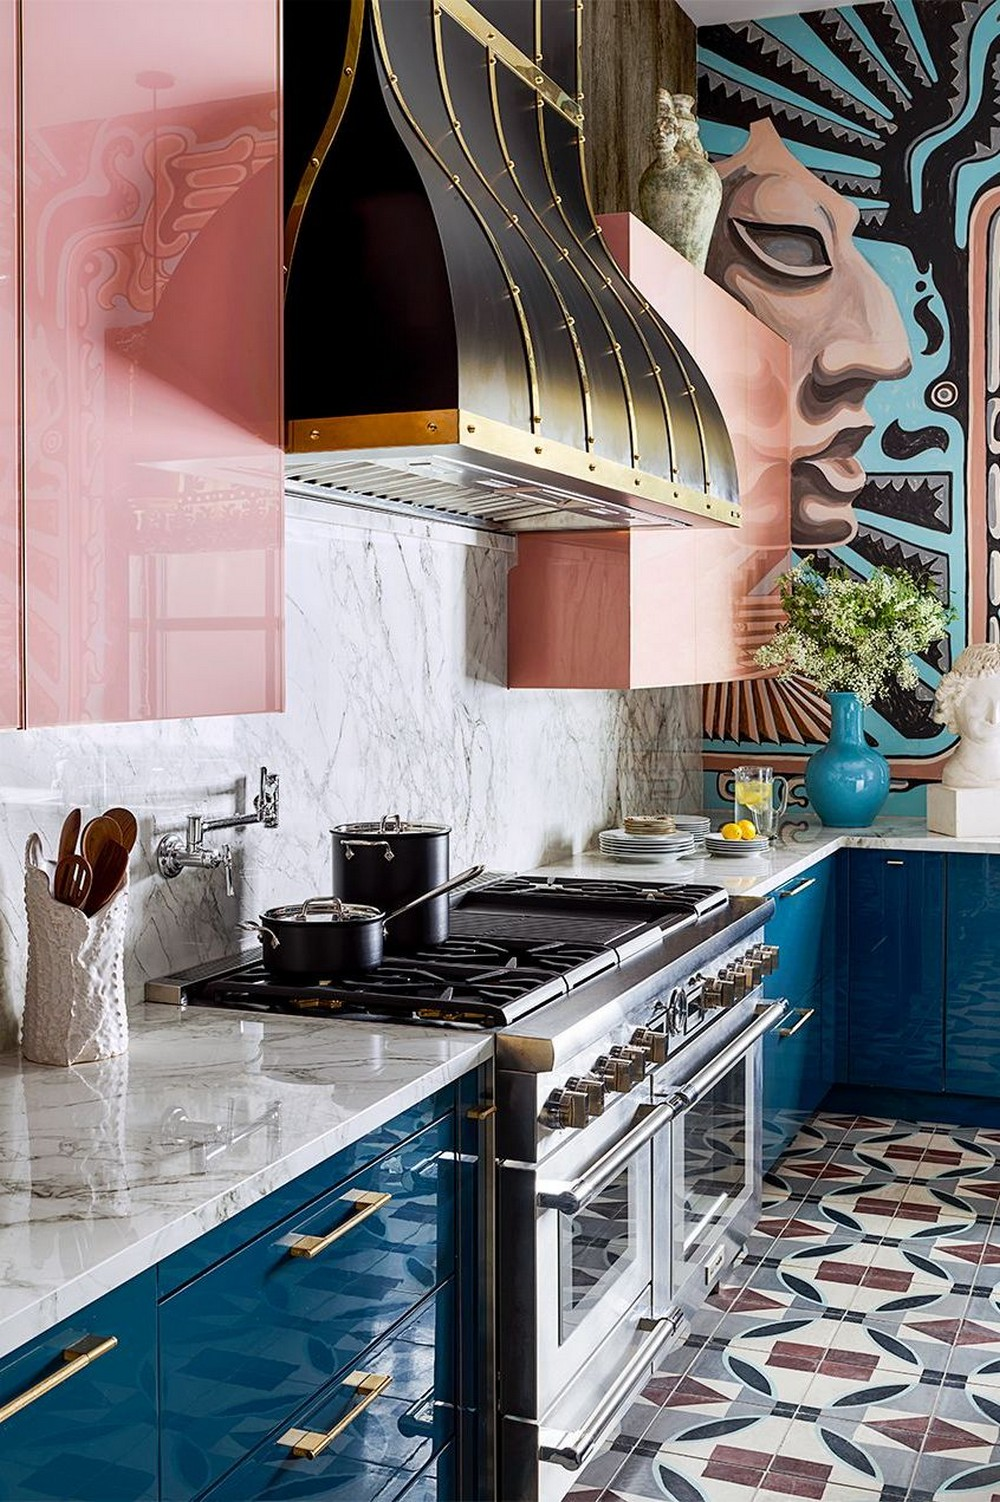 glossy-colors-in-kitchen... 80+ Unusual Kitchen Design Ideas for Small Spaces in 2021